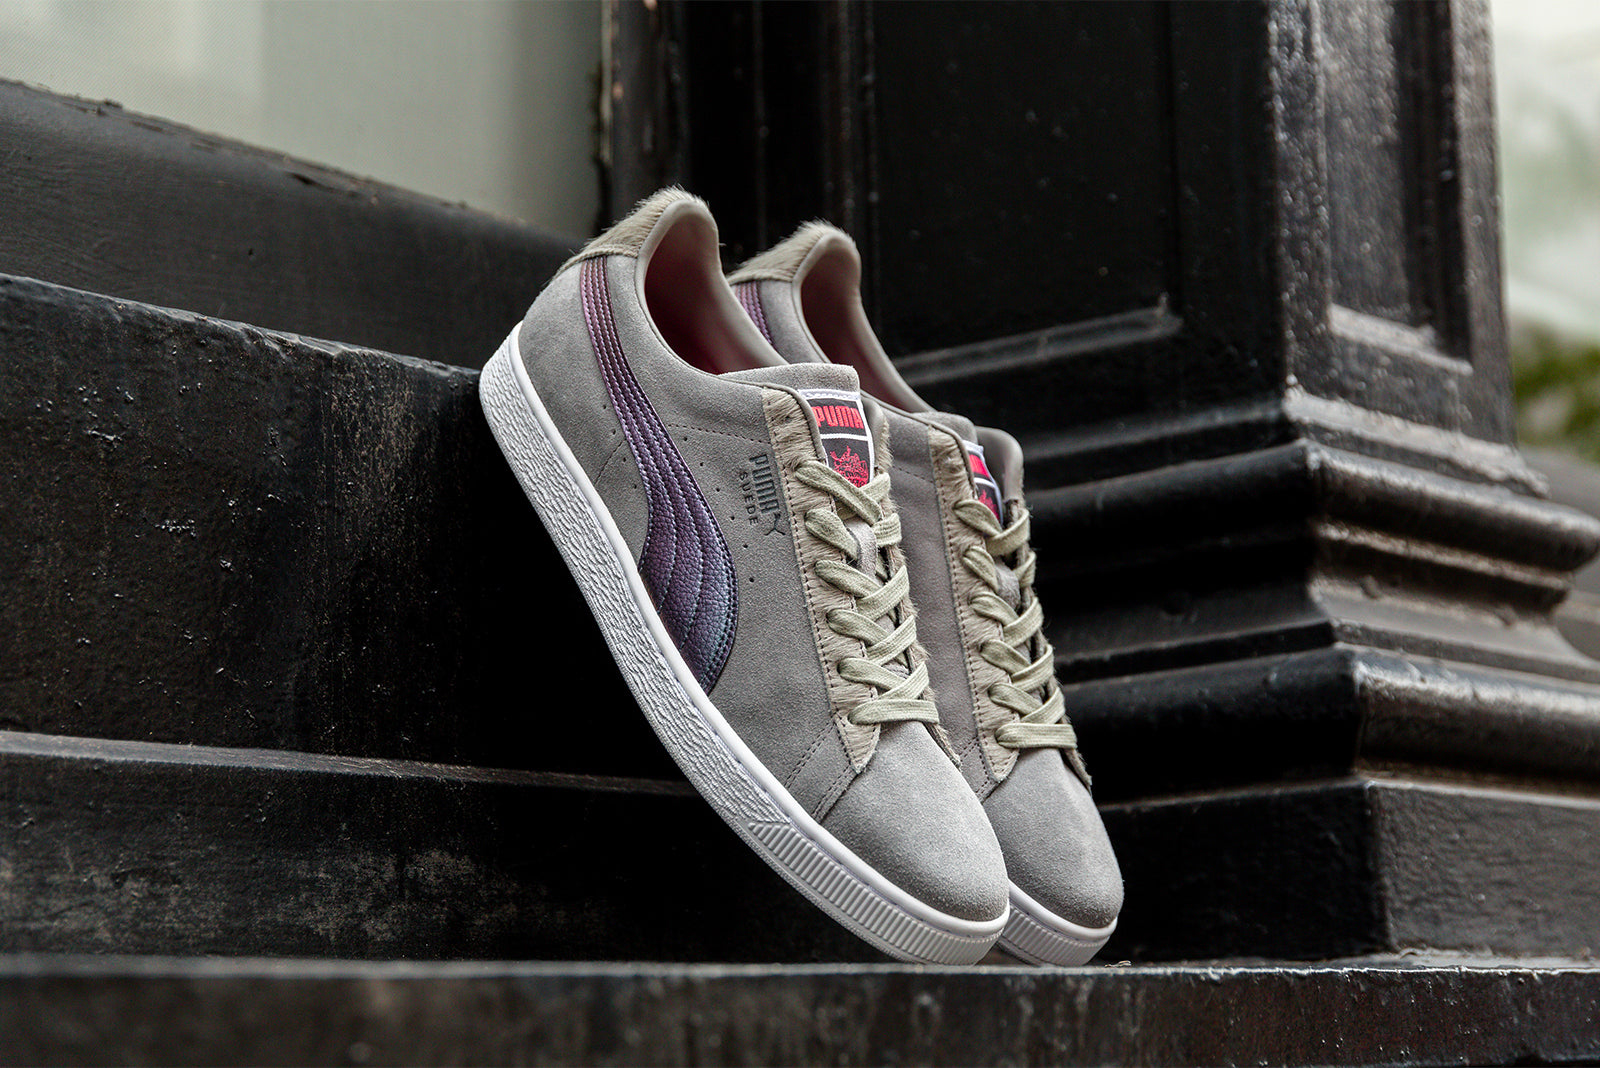 1dca39f07b57 PUMA Suede x Jeff Staple  Pigeon  366334-01. Frost Gray-Georgia Peach  Price  £95.00. Launch  Wednesday 7th November ONLINE  23 00GMT